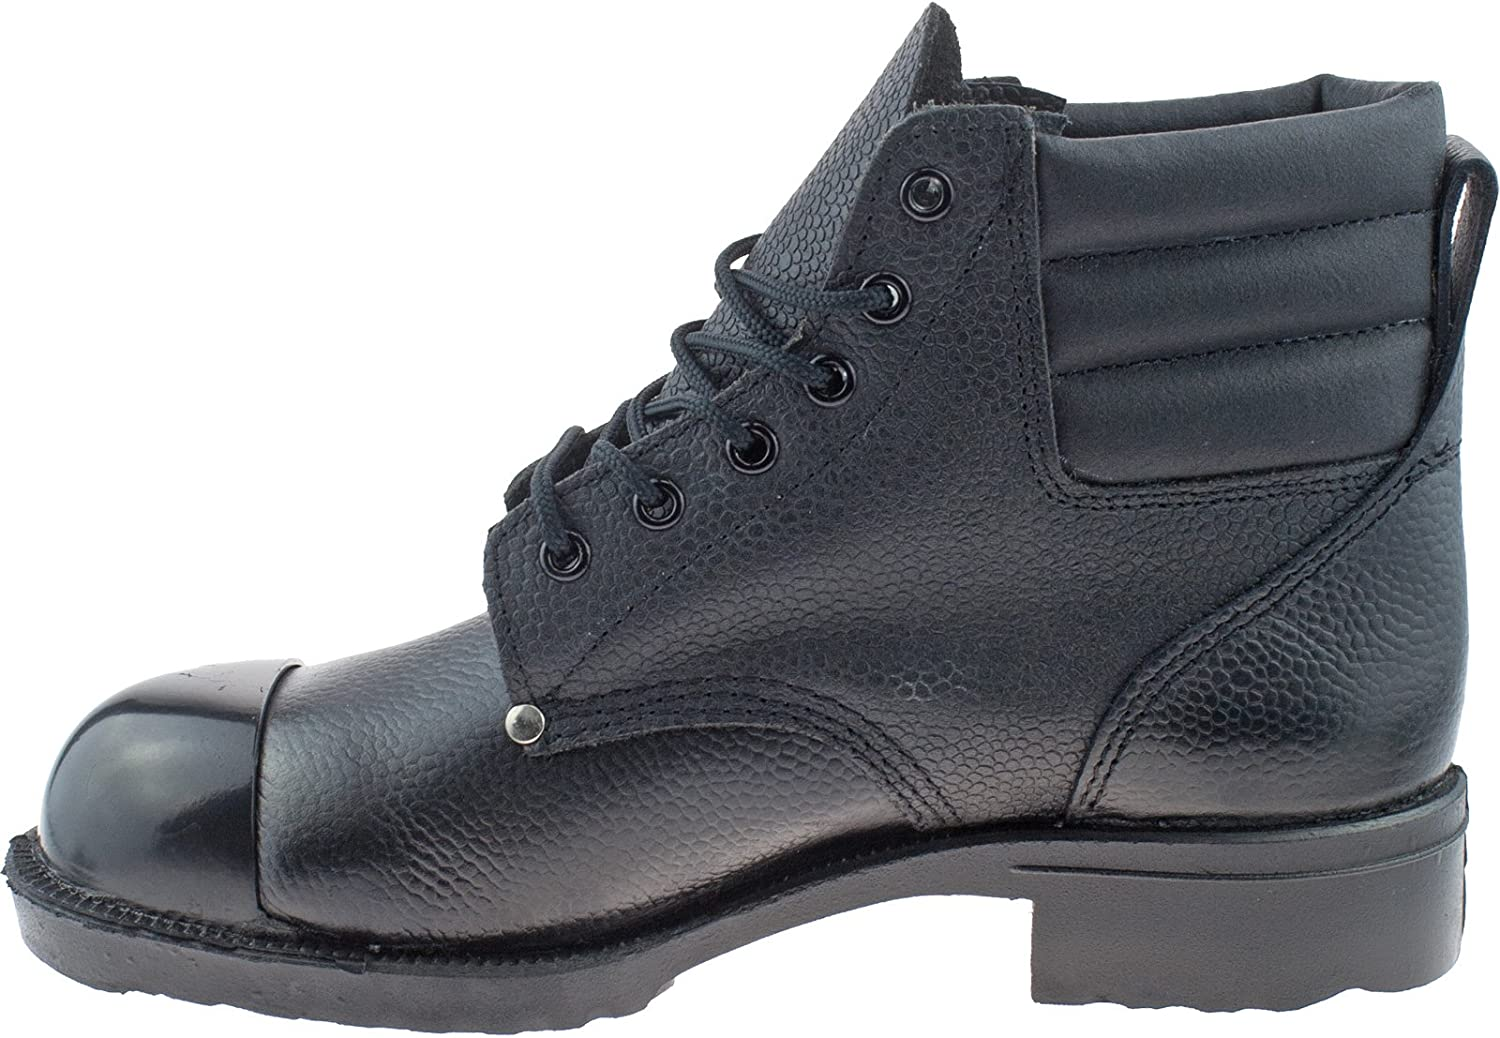 Grafters M492A Mens Safety Boots In Black